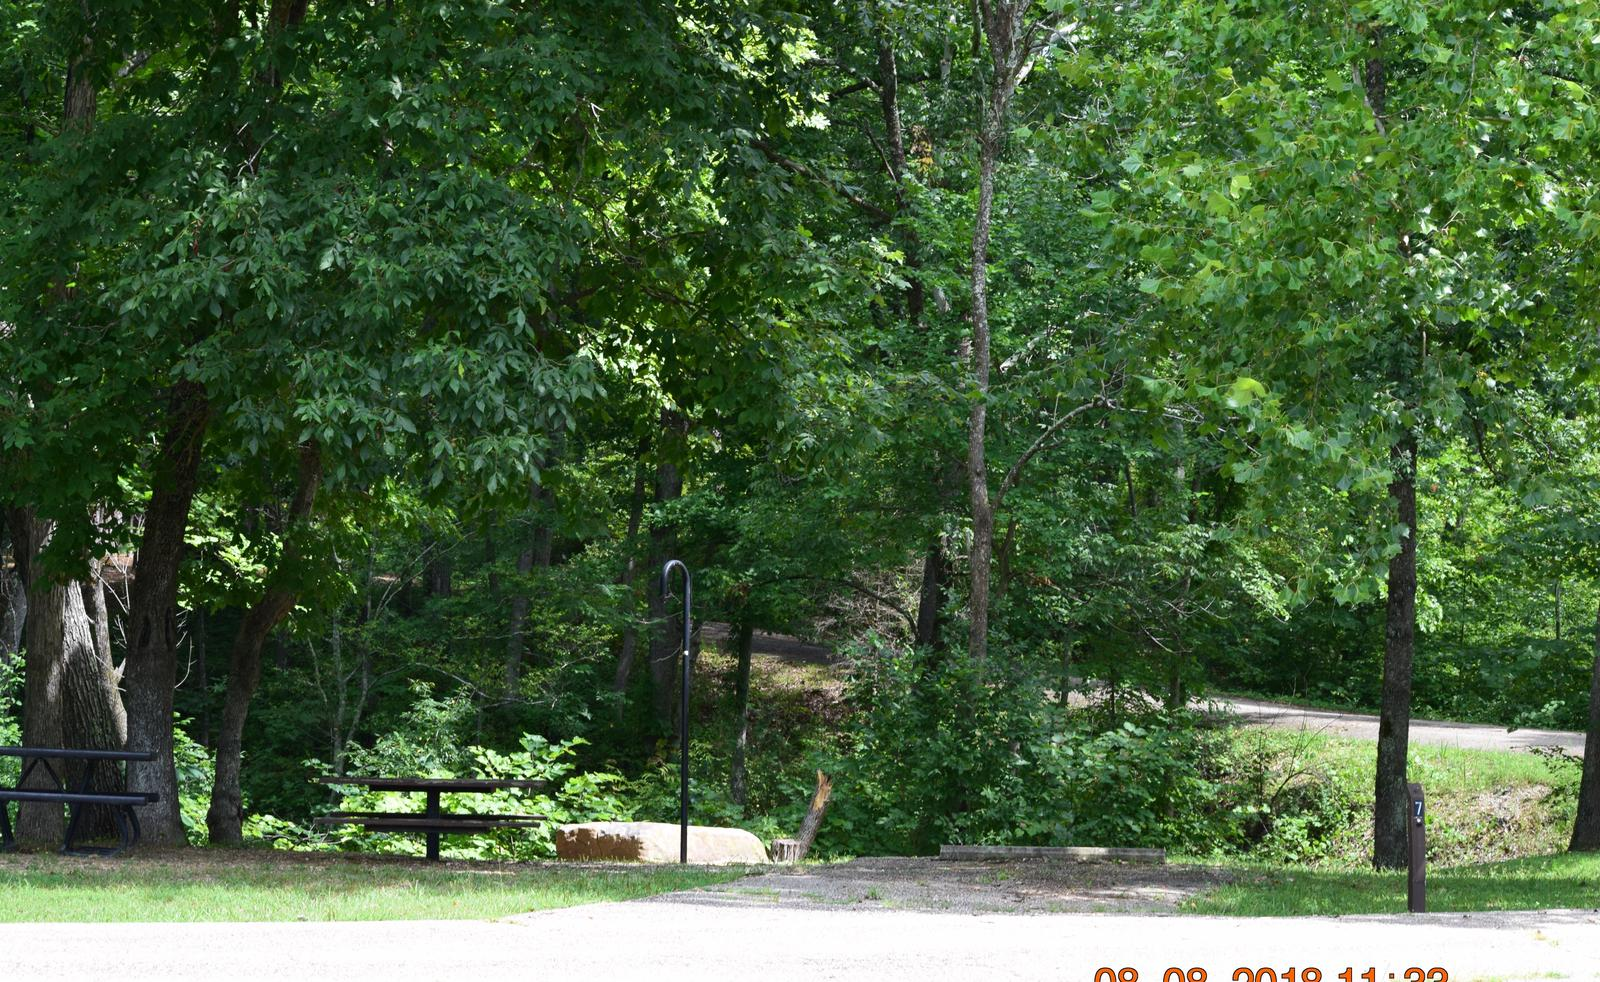 Campsite 7 showing parking spur, lantern post and fire ringCampsite 7